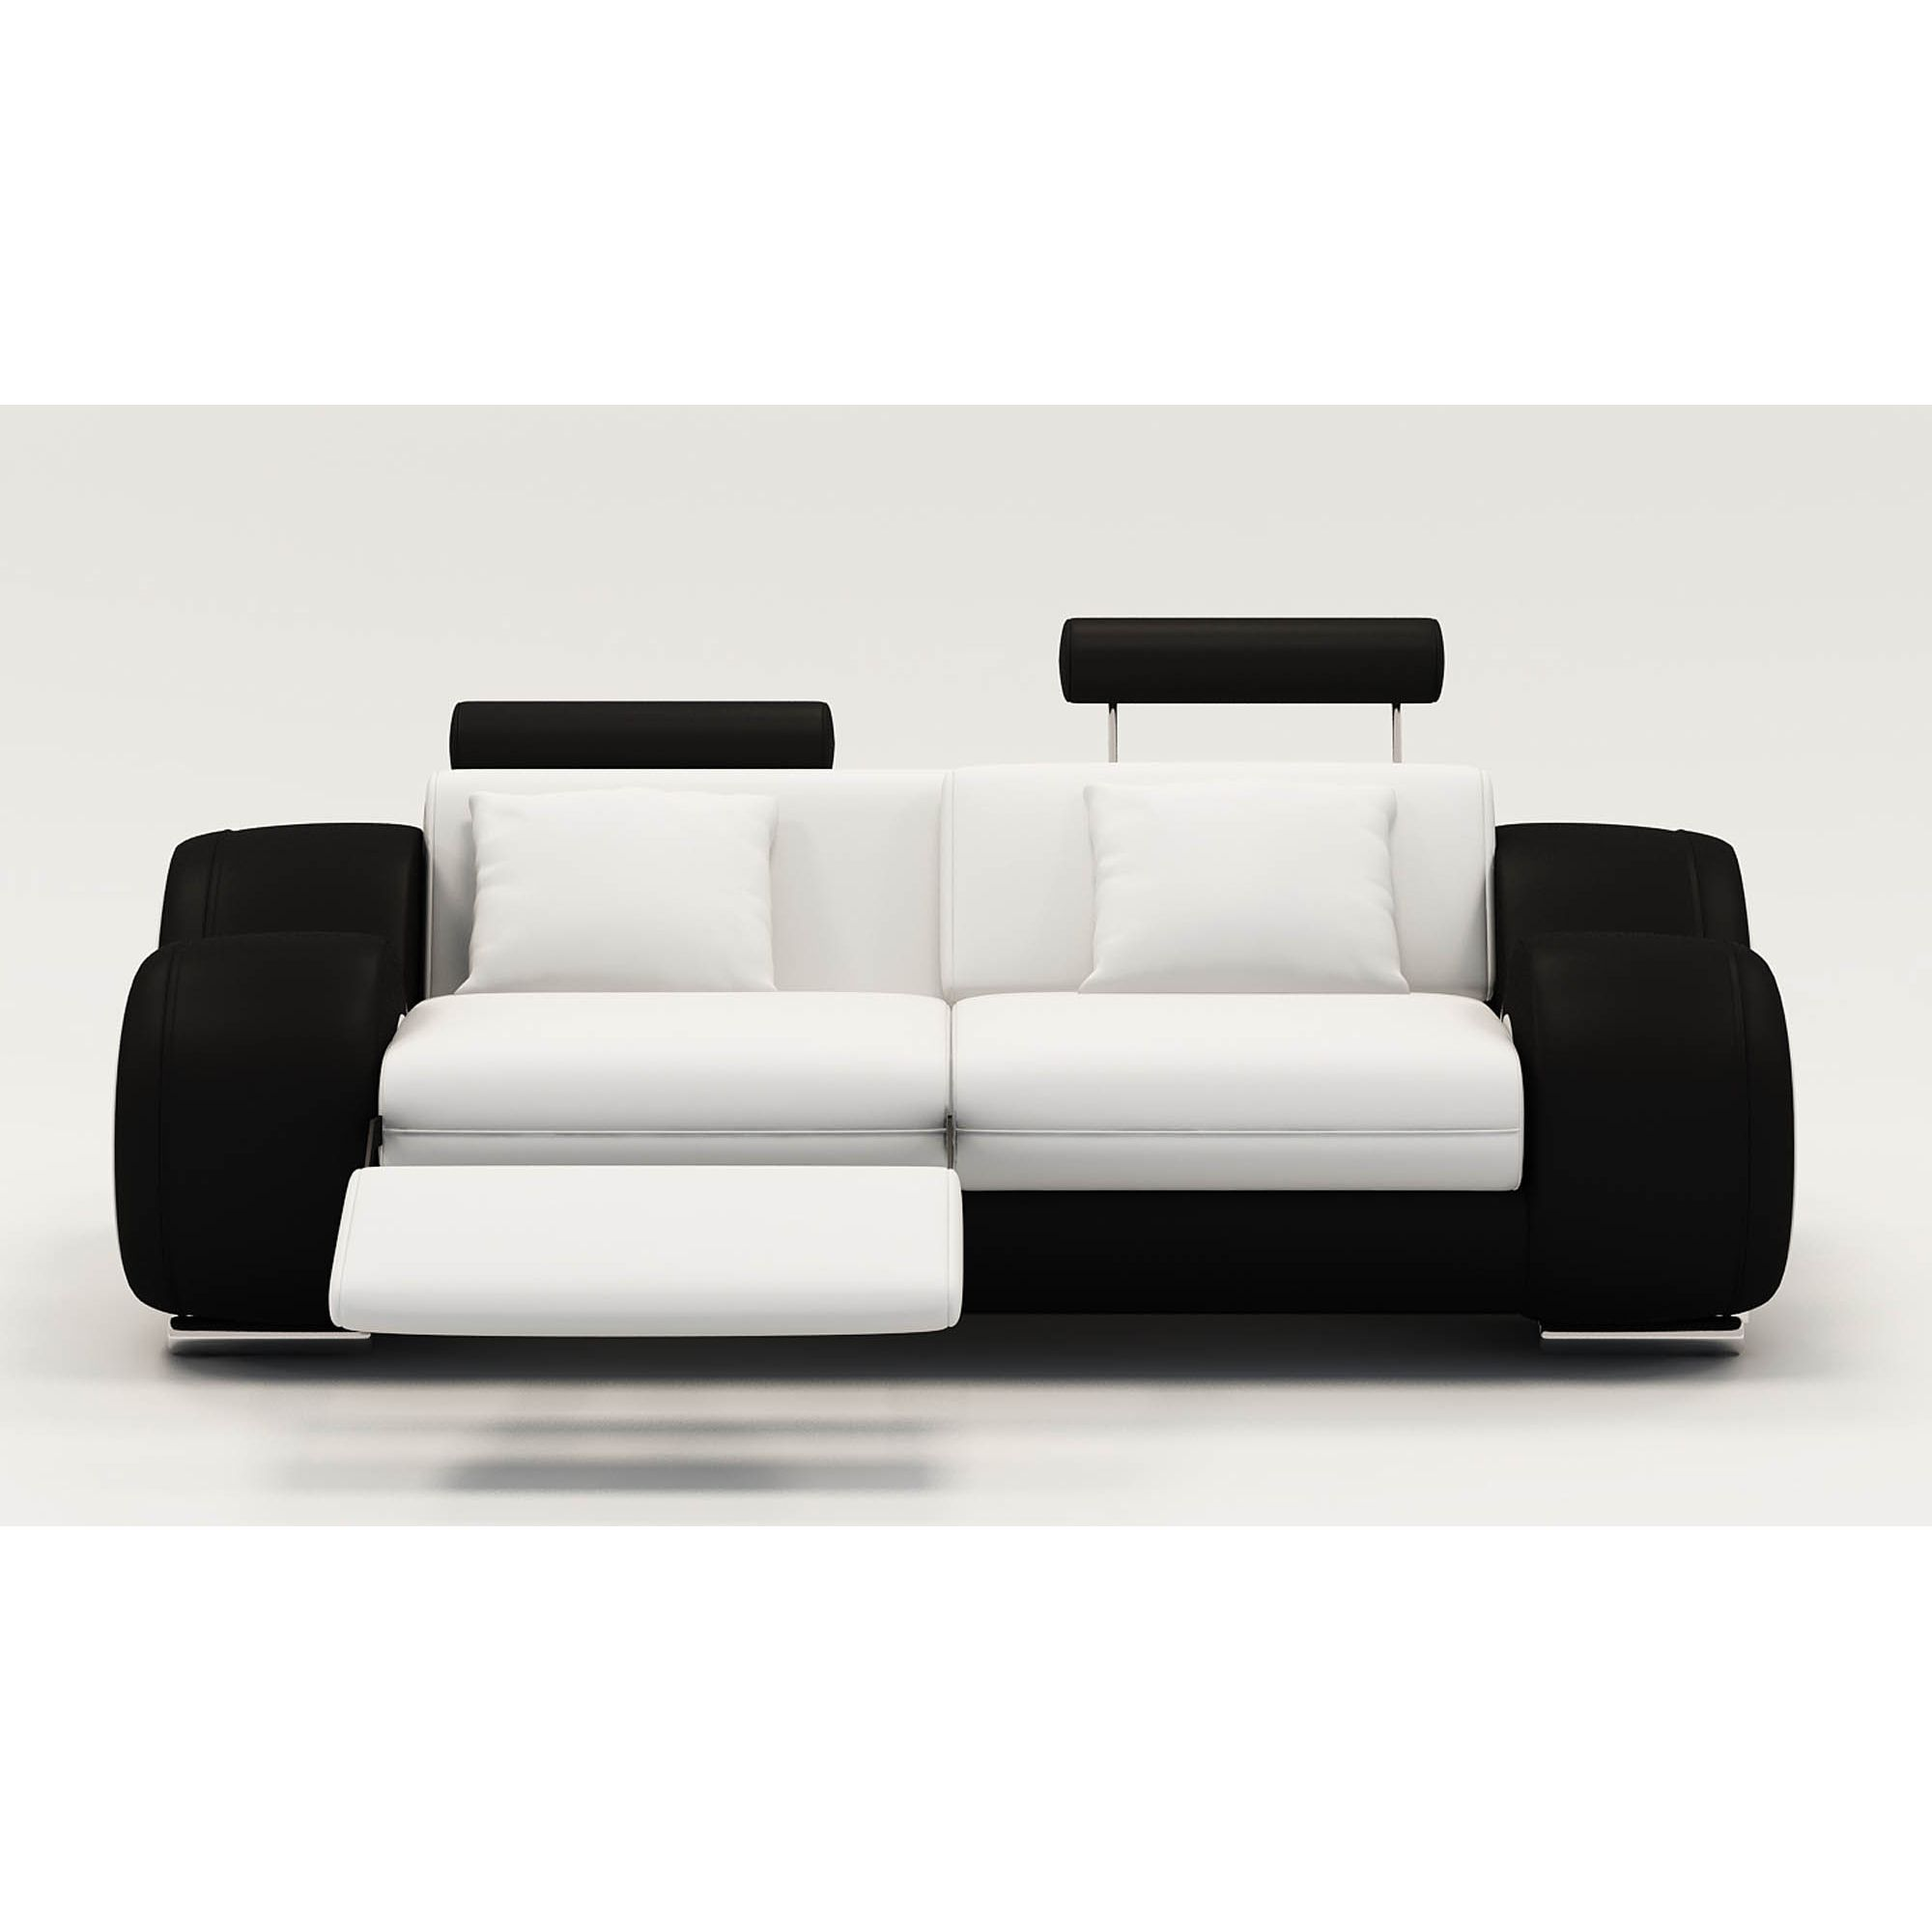 deco in paris canape 2 places design relax oslo en cuir blanc et noir 2pl blanc noir oslo. Black Bedroom Furniture Sets. Home Design Ideas